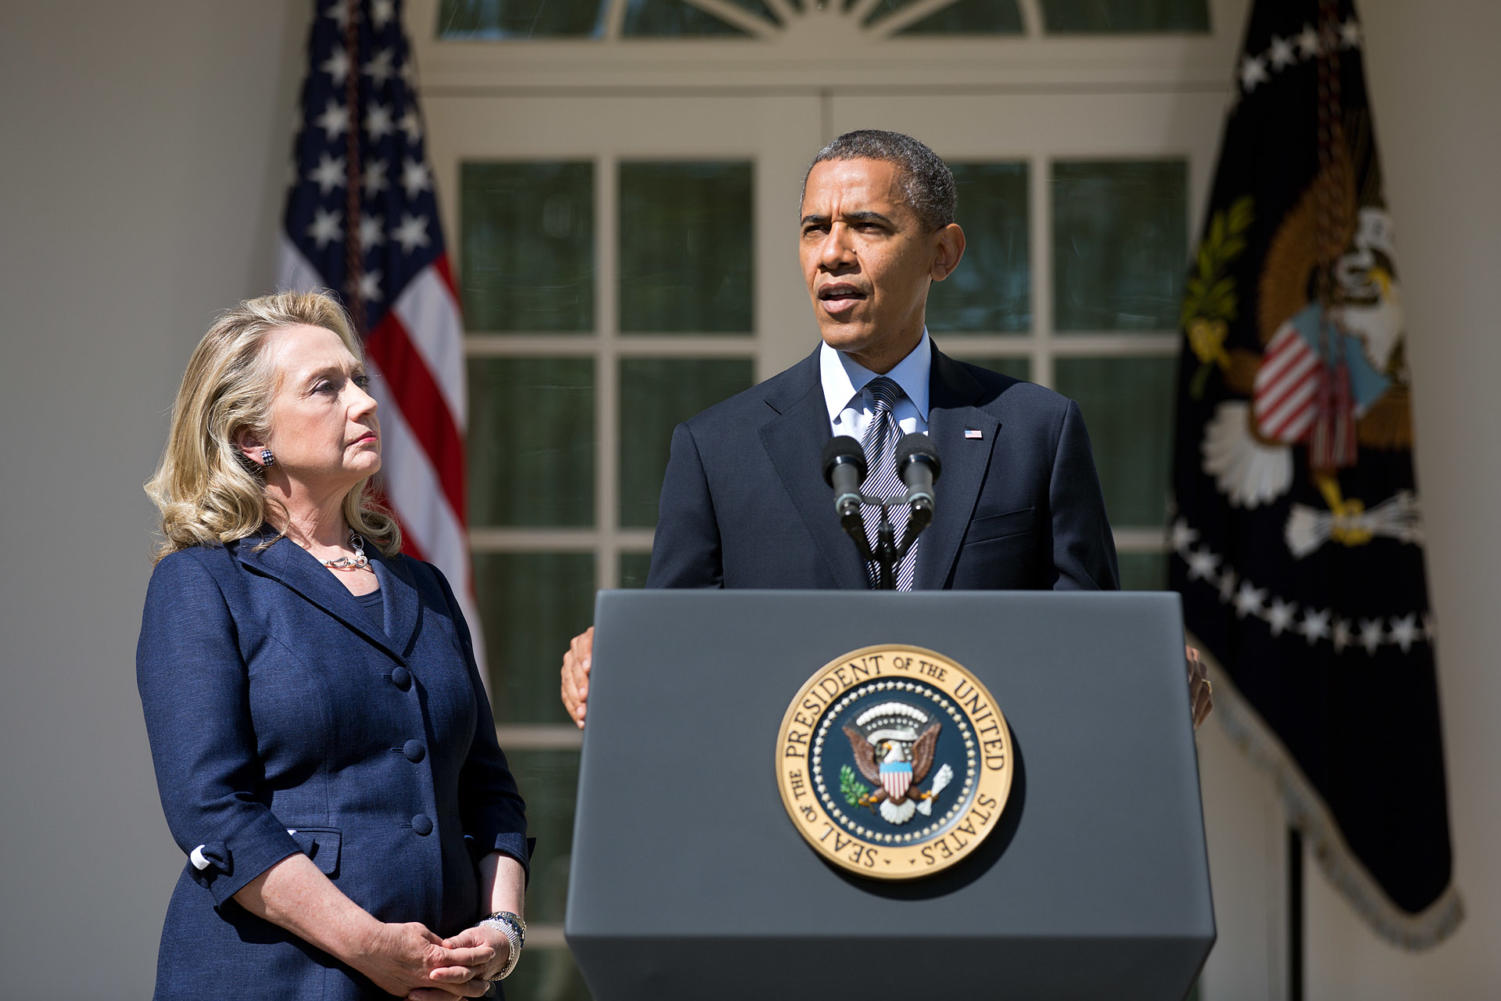 President Barack Obama, with Secretary of State Hillary Rodham Clinton, delivers a statement in the Rose Garden of the White House, Sept. 12, 2012, regarding the attack on the U.S. consulate in Benghazi, Libya. (Official White House Photo by Lawrence Jackson)